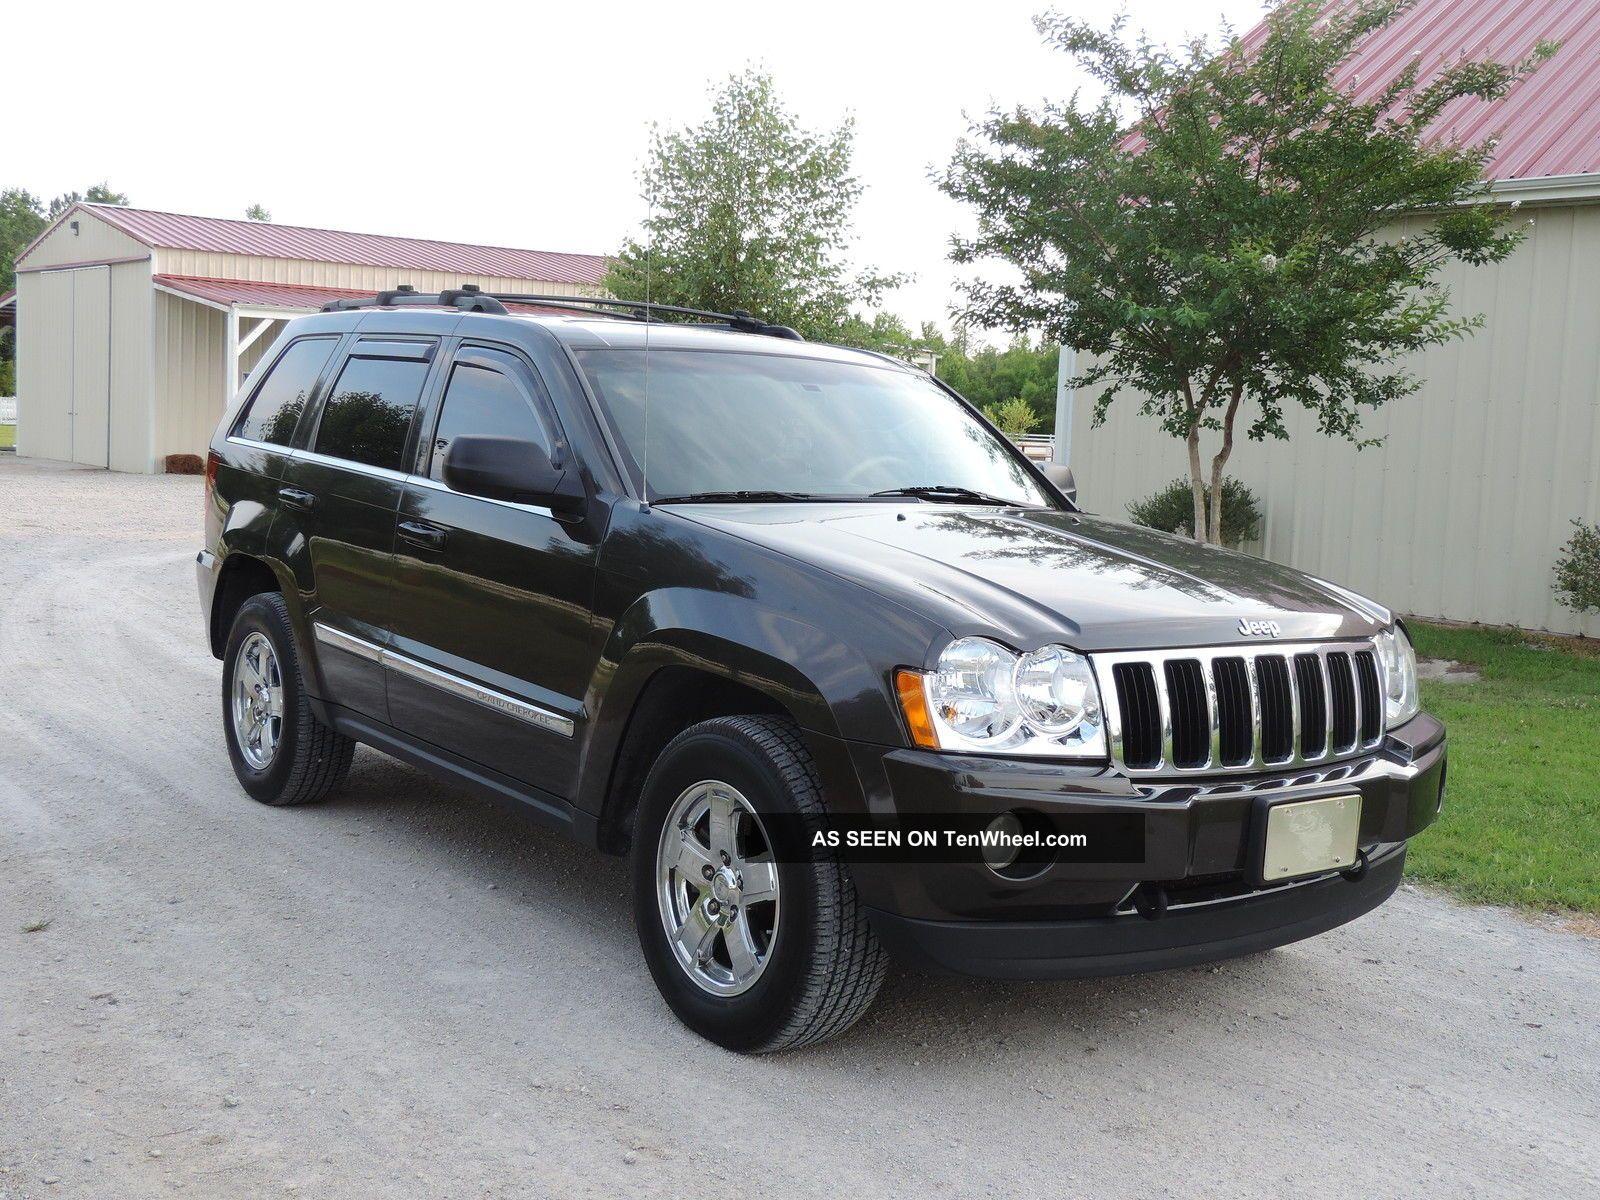 2005 jeep grand cherokee limited sport utility 4 door 5 7l. Black Bedroom Furniture Sets. Home Design Ideas